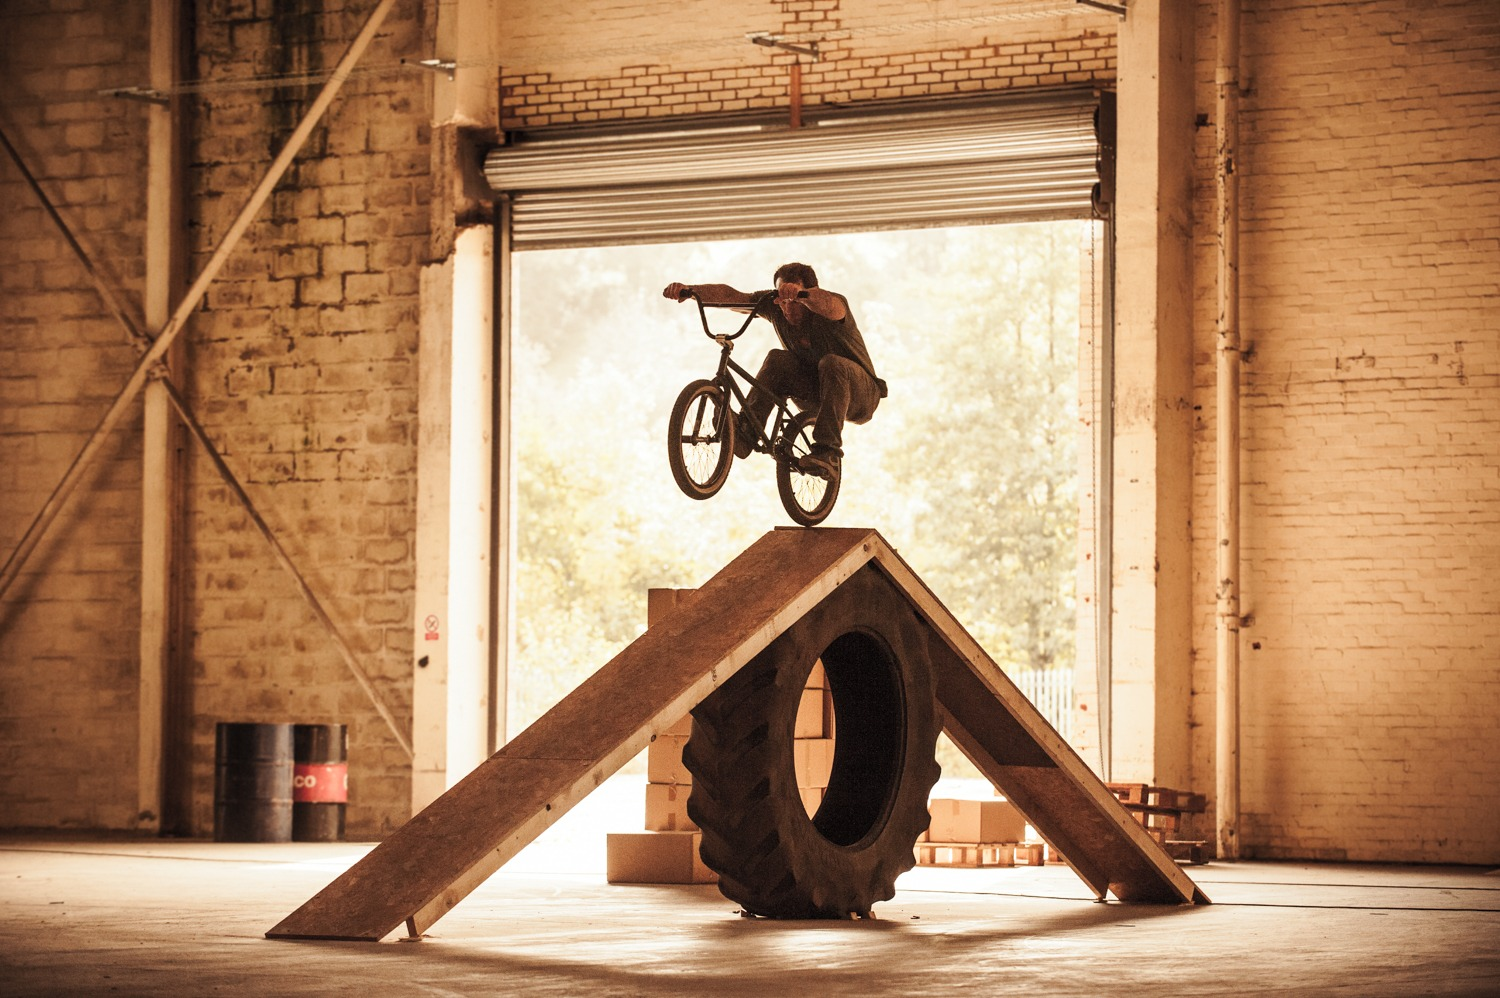 Canadian import, Jason Teet, manualled across two of these tractor tyre set-ups, one after the other. Sick guy.